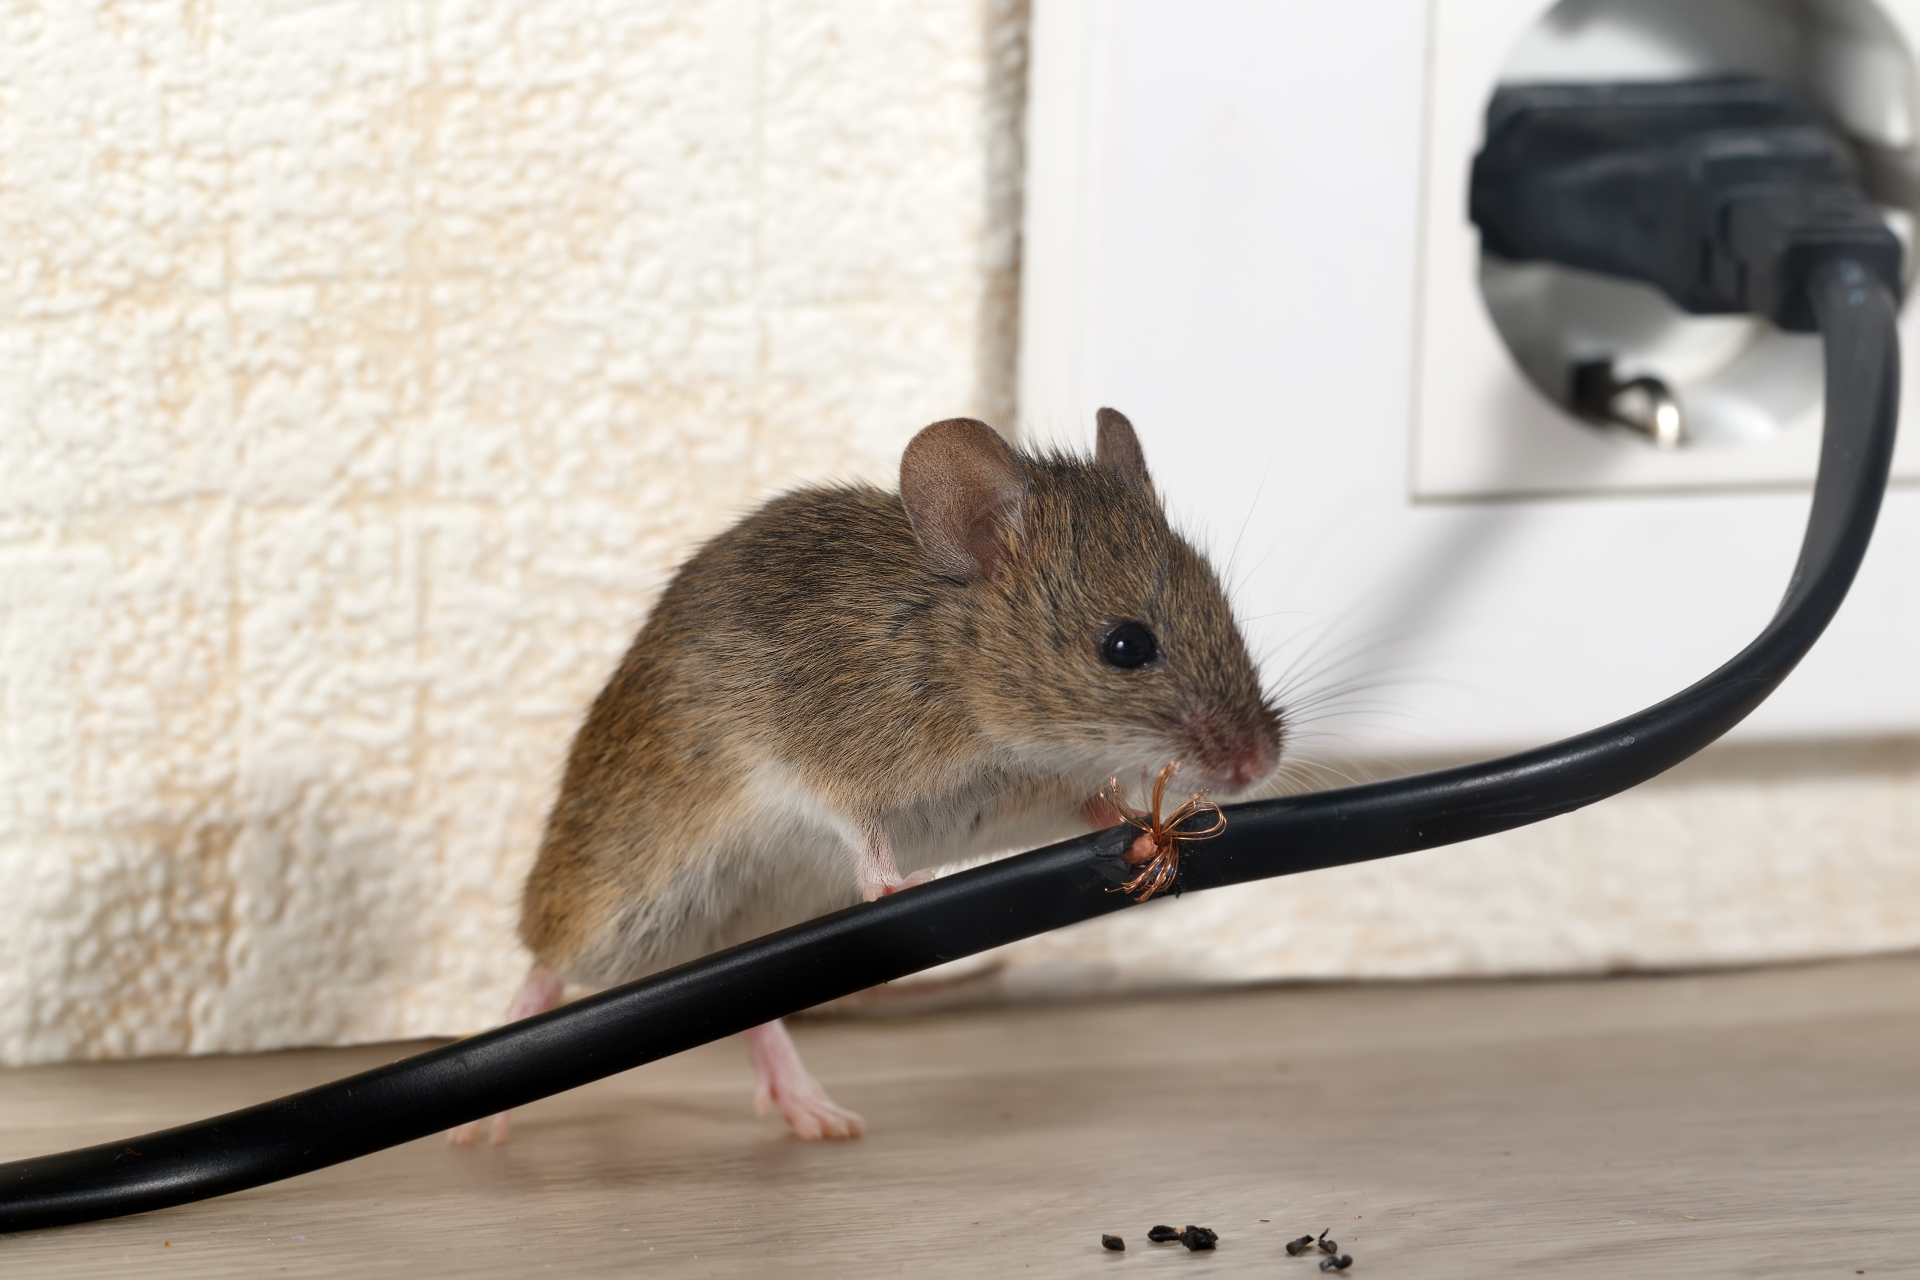 Mice Infestation, Pest Control in Crouch End, N8. Call Now 020 8166 9746